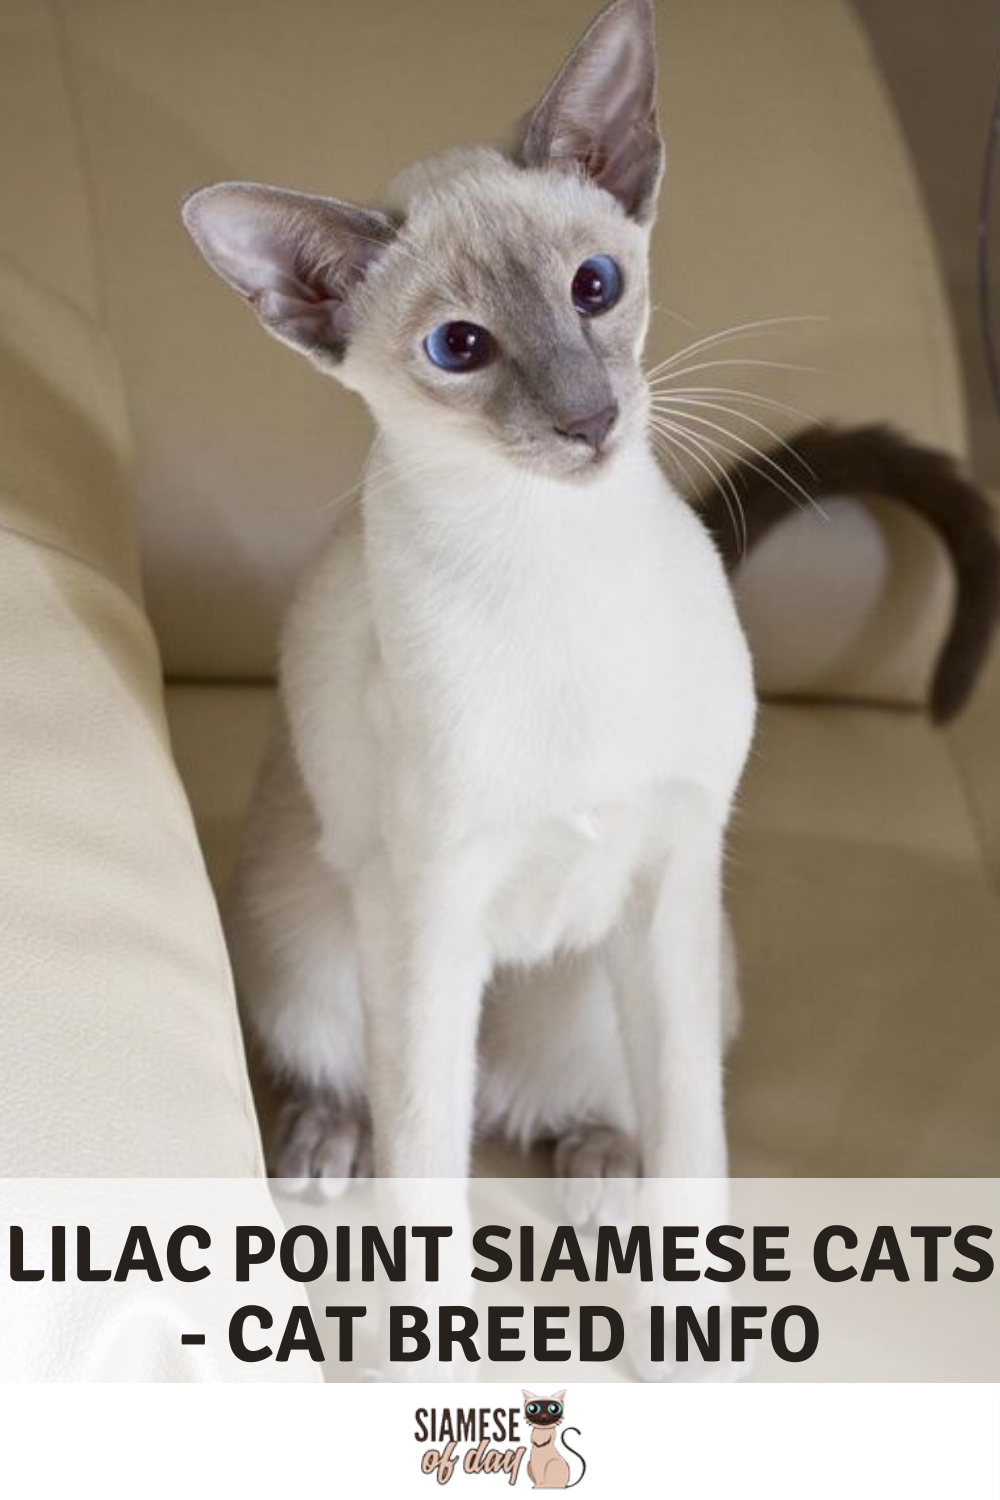 Lilac Point Siamese Cats Cat Breed Info in 2020